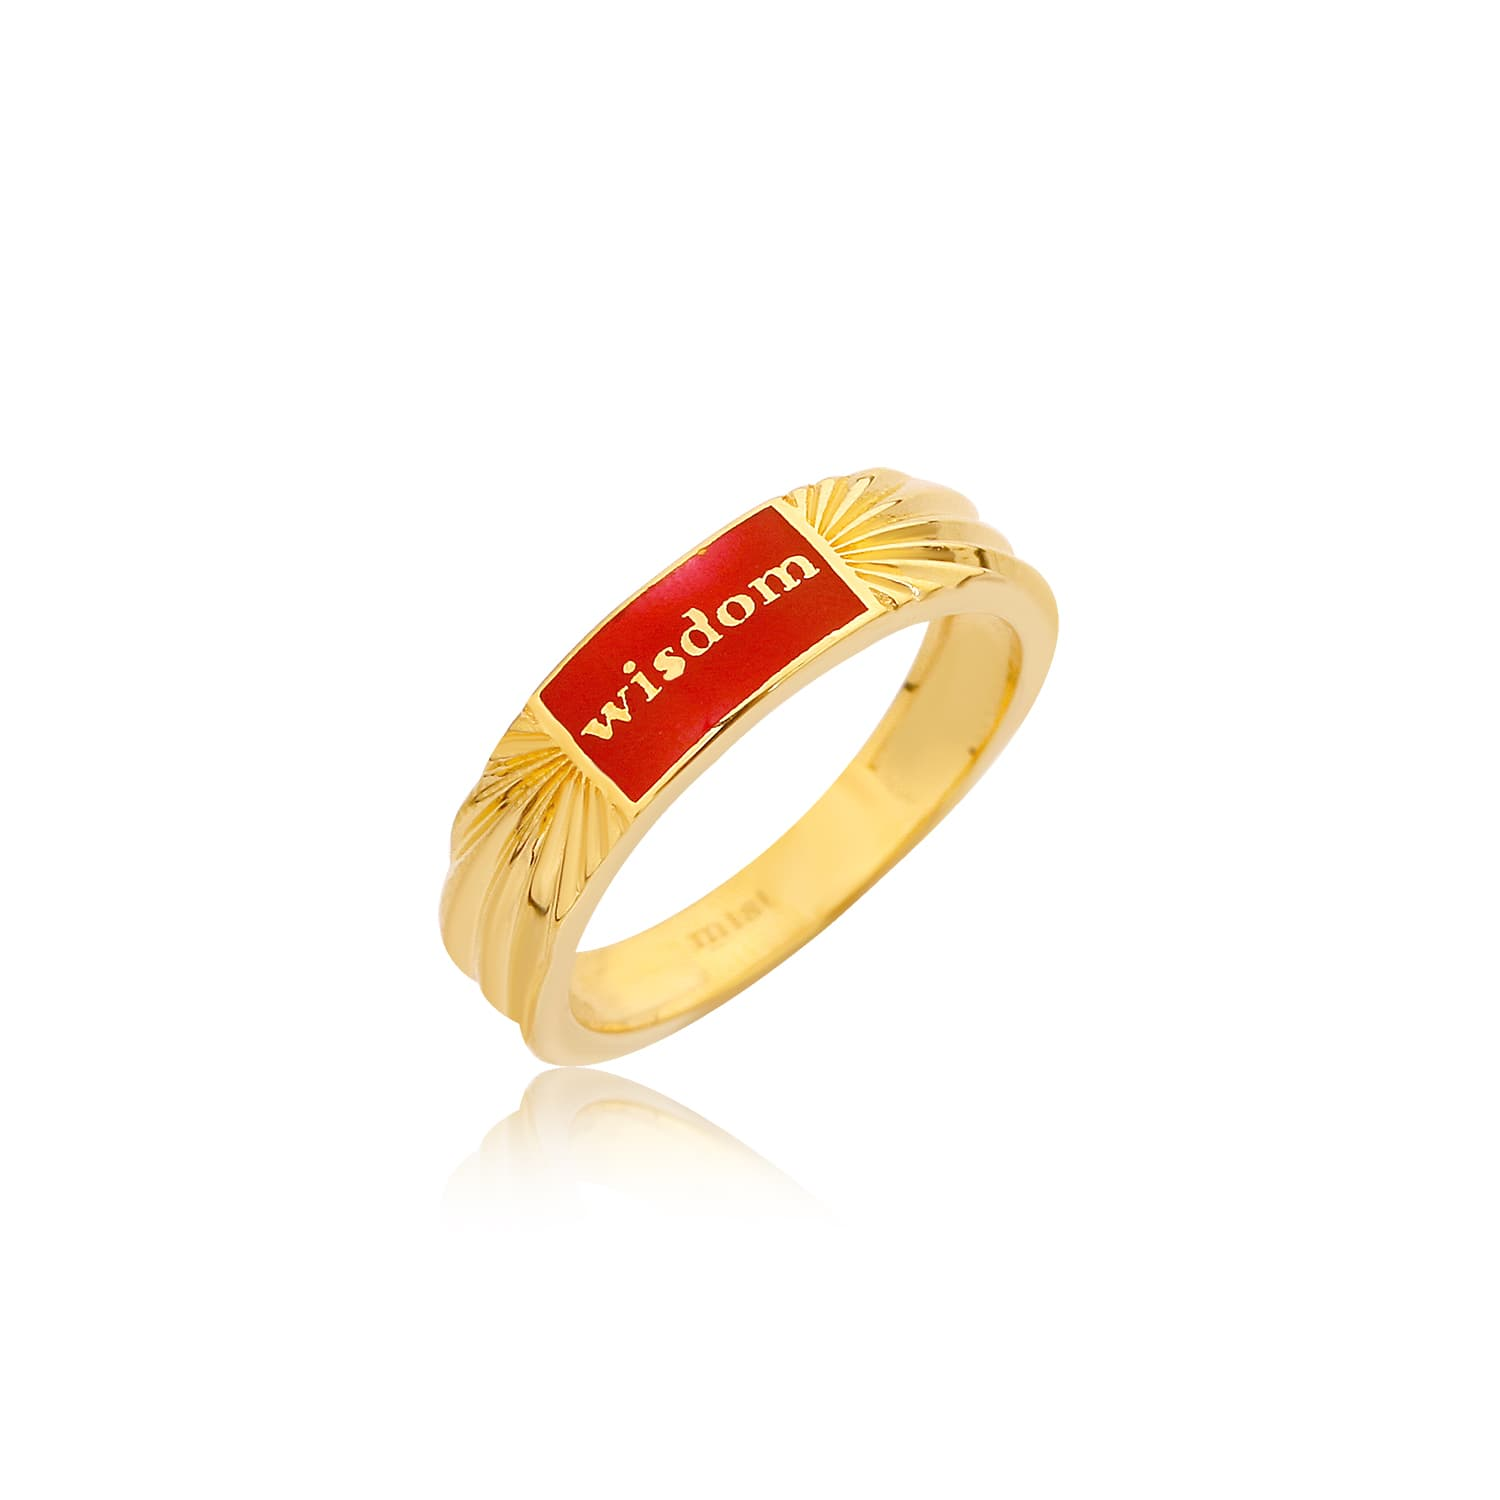 Real gold plated ring models on silver